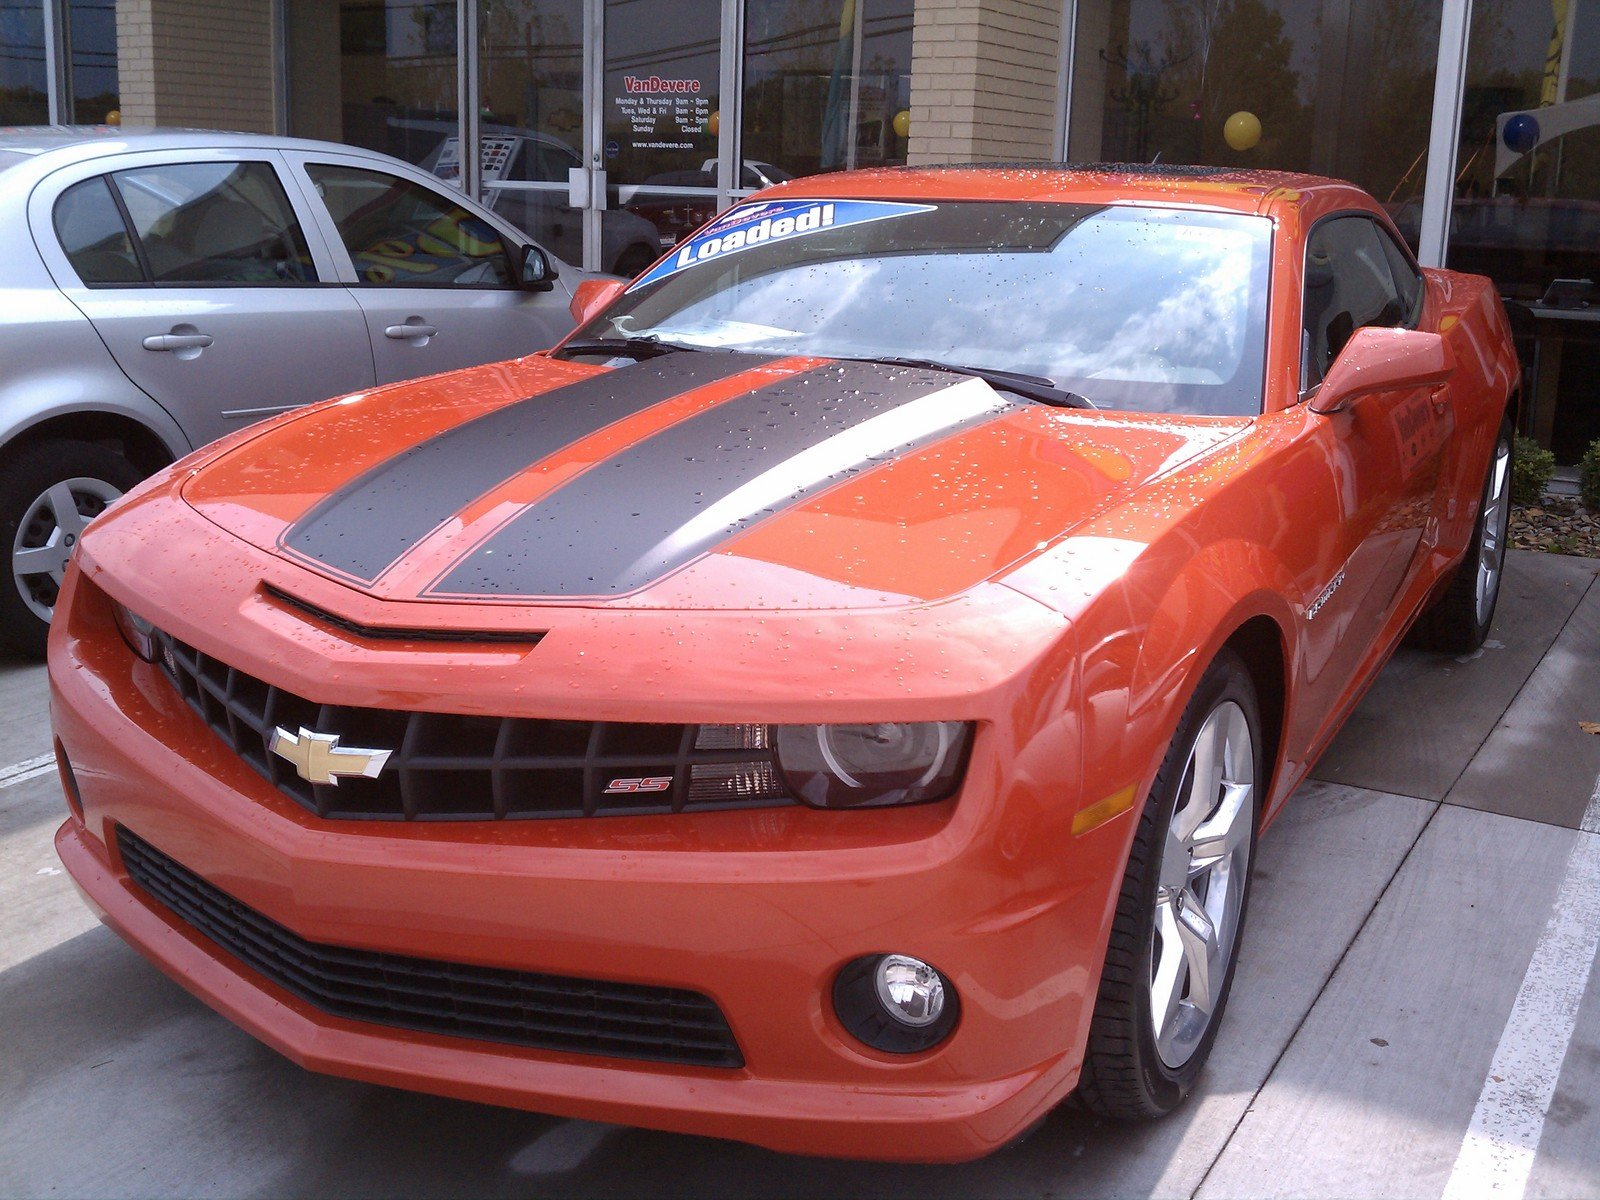 American Muscle: The 2010 Chevrolet Camaro SS - Picture ...